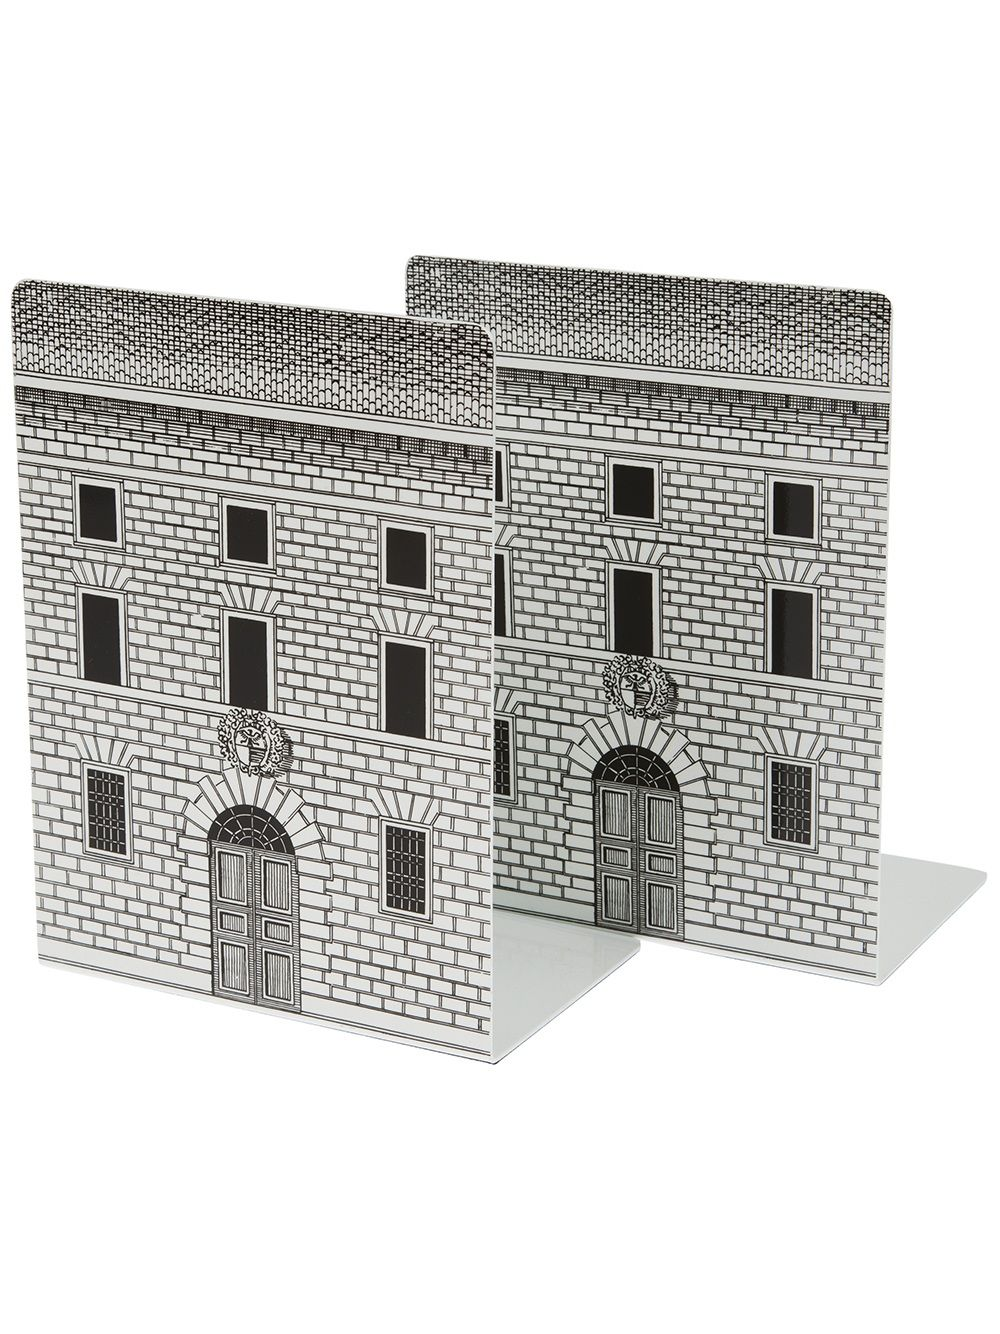 Fornasetti architectural bookends :: #Livres#books